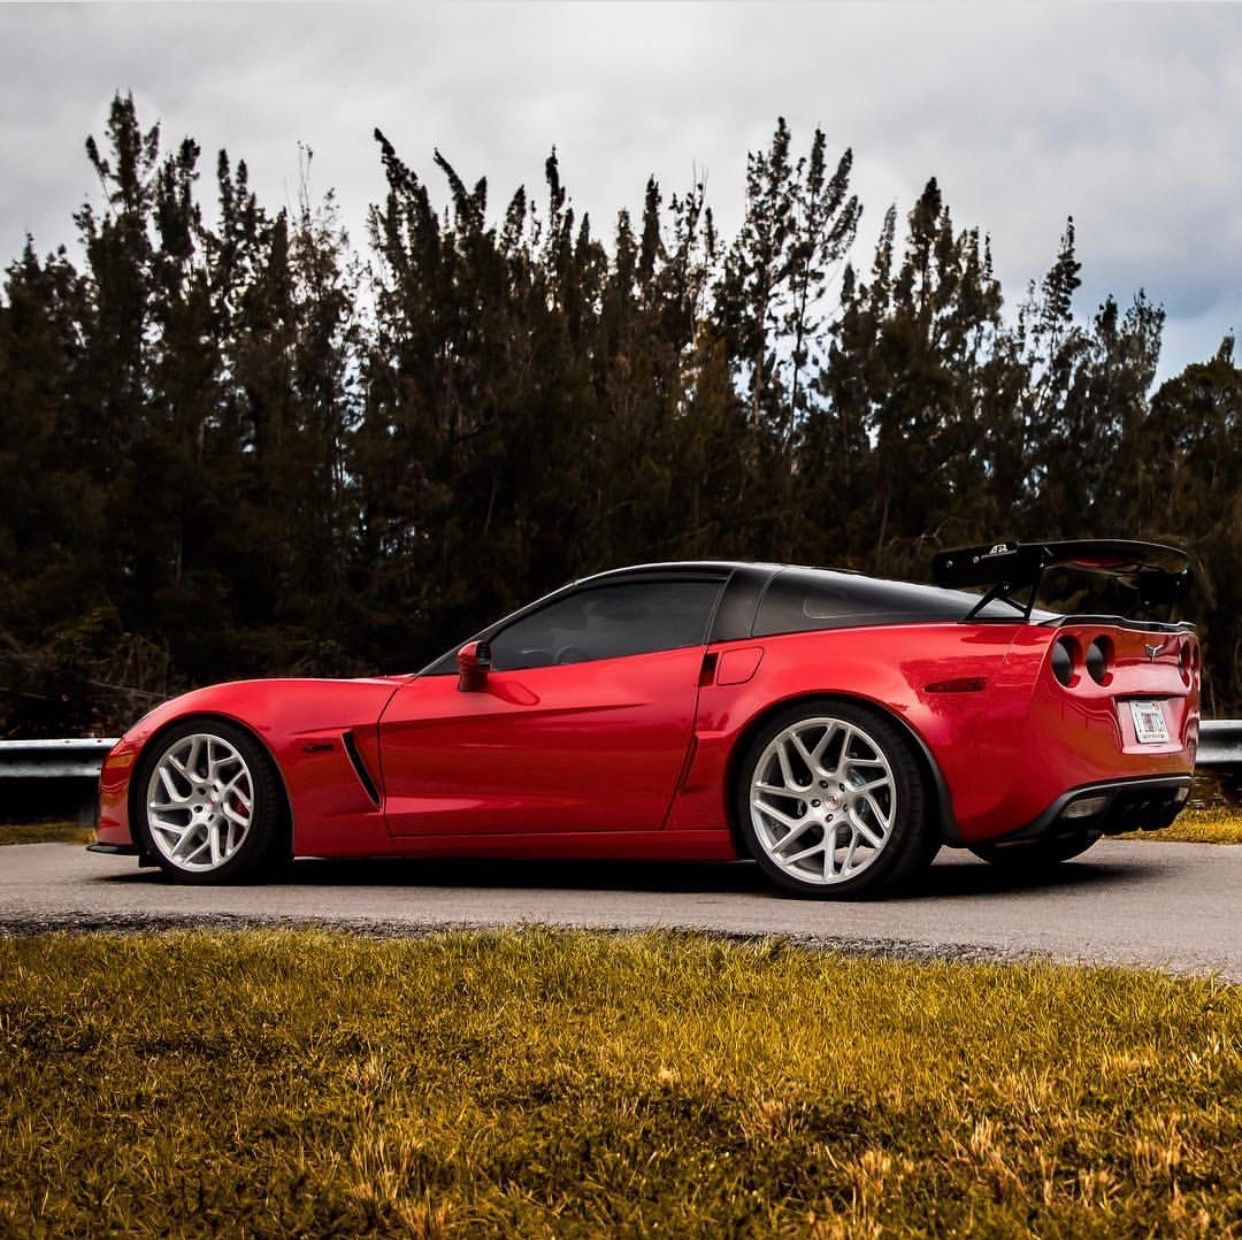 Chevrolet Corvette C6 Z06 Painted In Red W A Set Of Vossen Cg 209t Wheels Finished In Brushed Clear P Best Luxury Cars Little Red Corvette Sports Cars Luxury